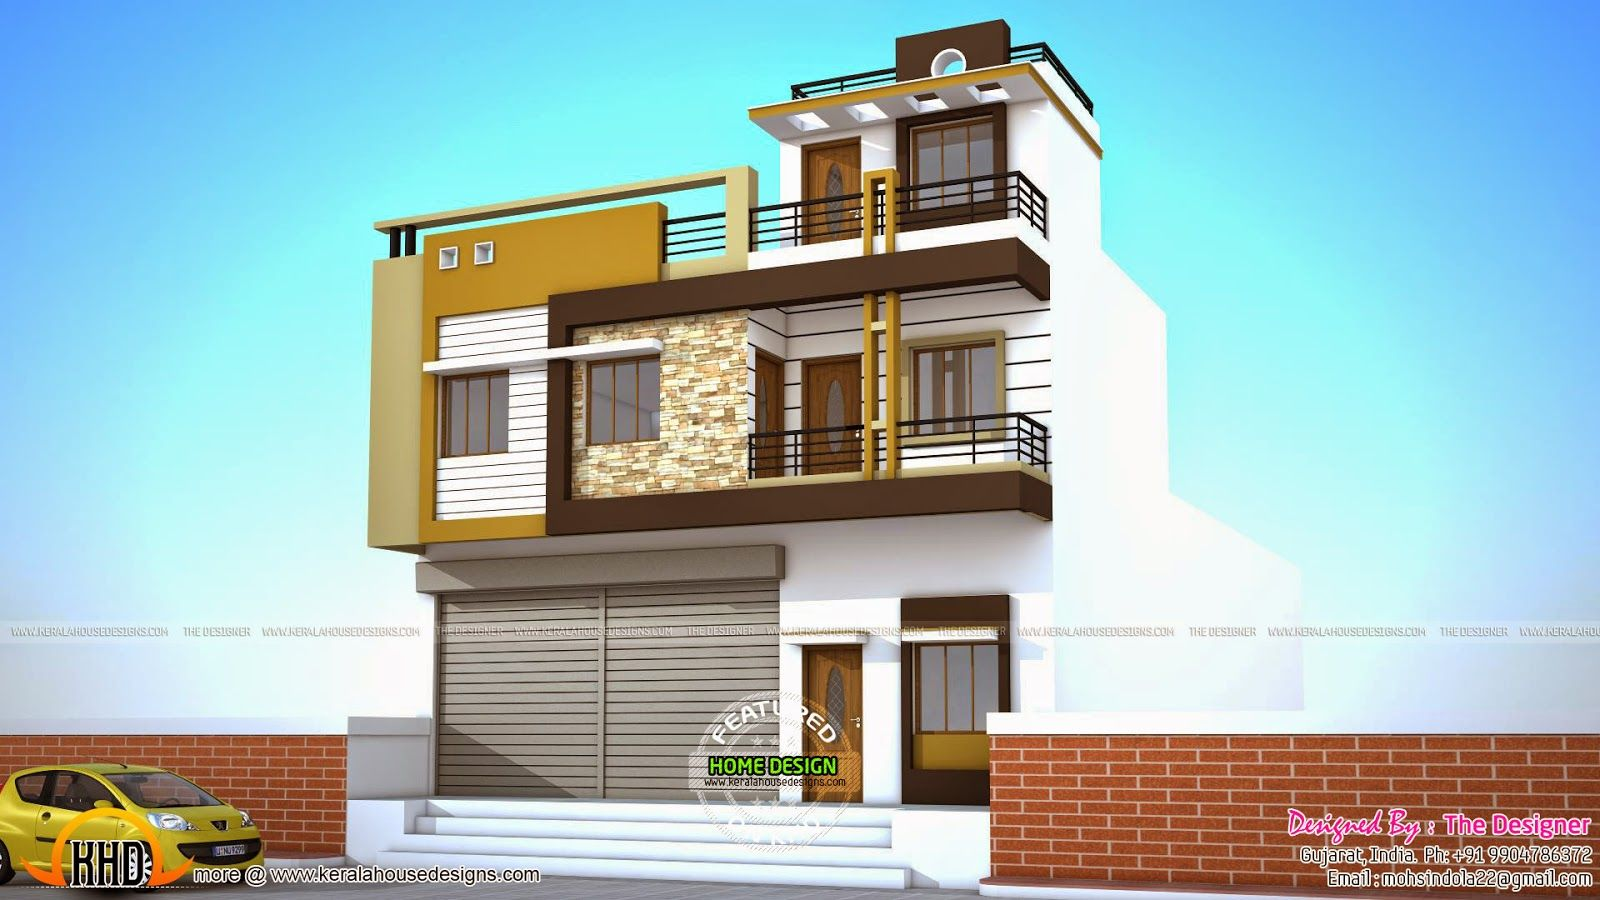 2 house plans with shops on ground floor house ground for Home plans and designs